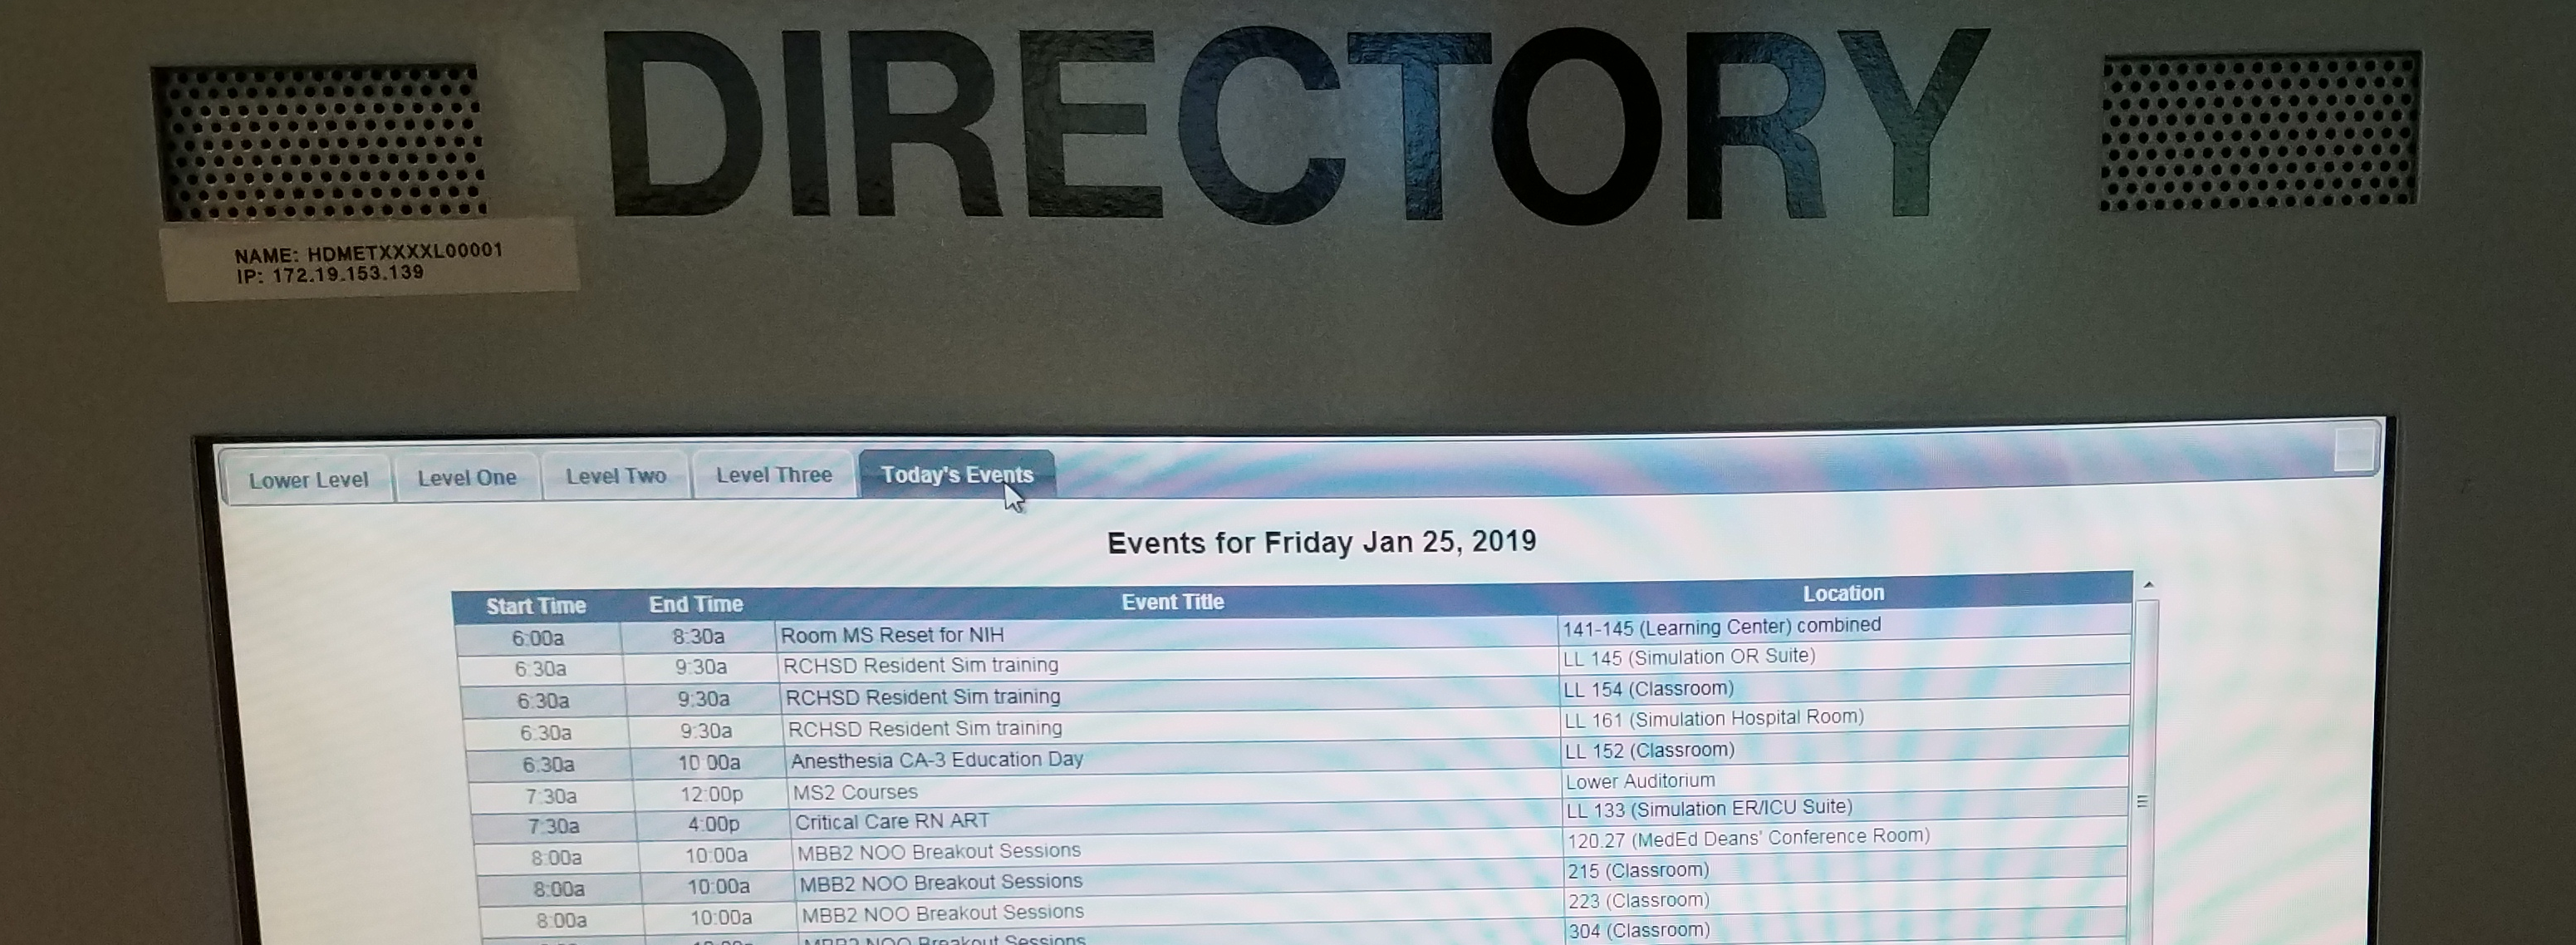 The MET Lower Level Directory displays today's events and room locations.